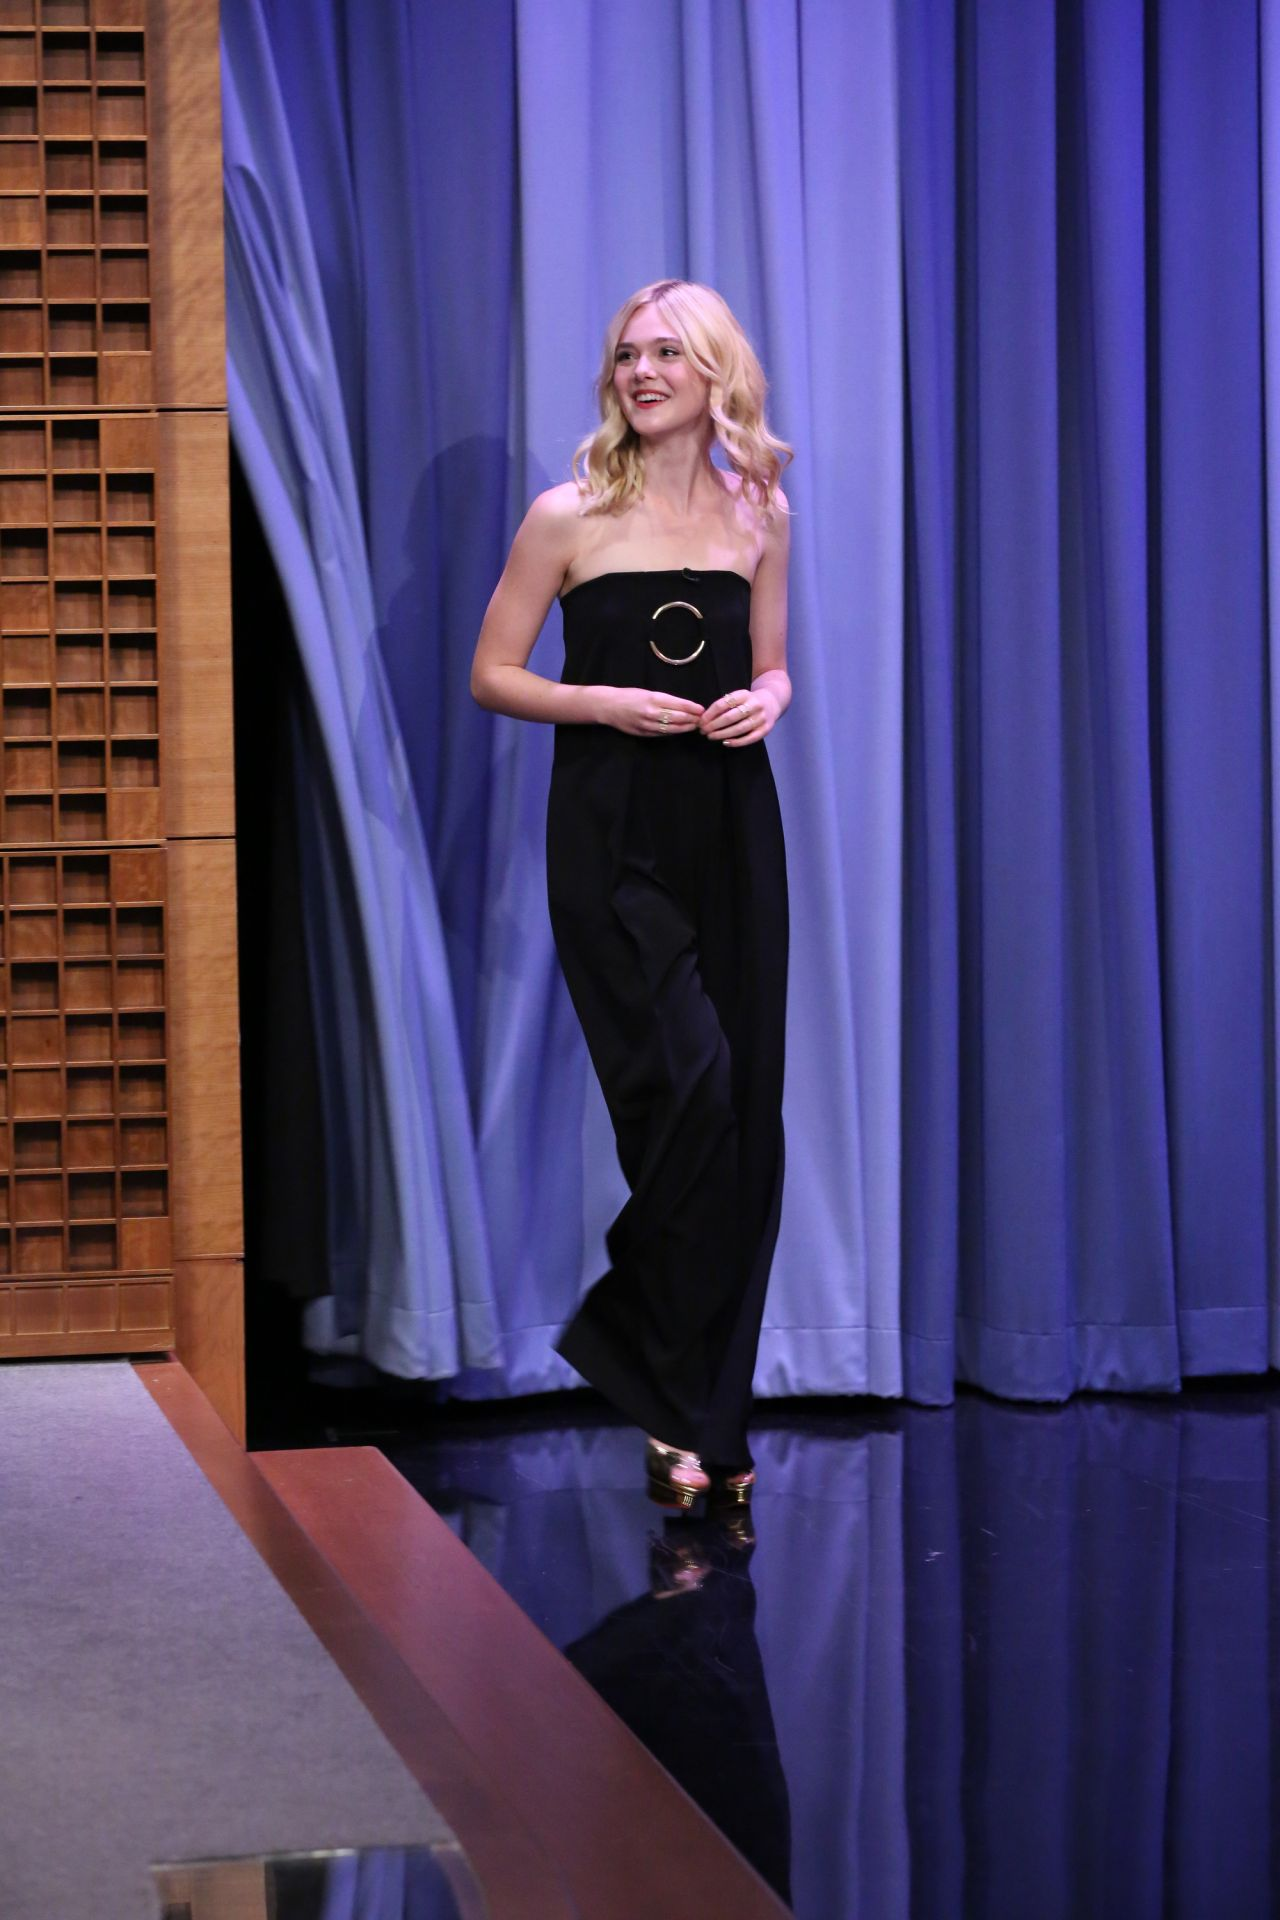 elle-fanning-the-tonight-show-starring-jimmy-fallon-in-nyc-september-2015_2